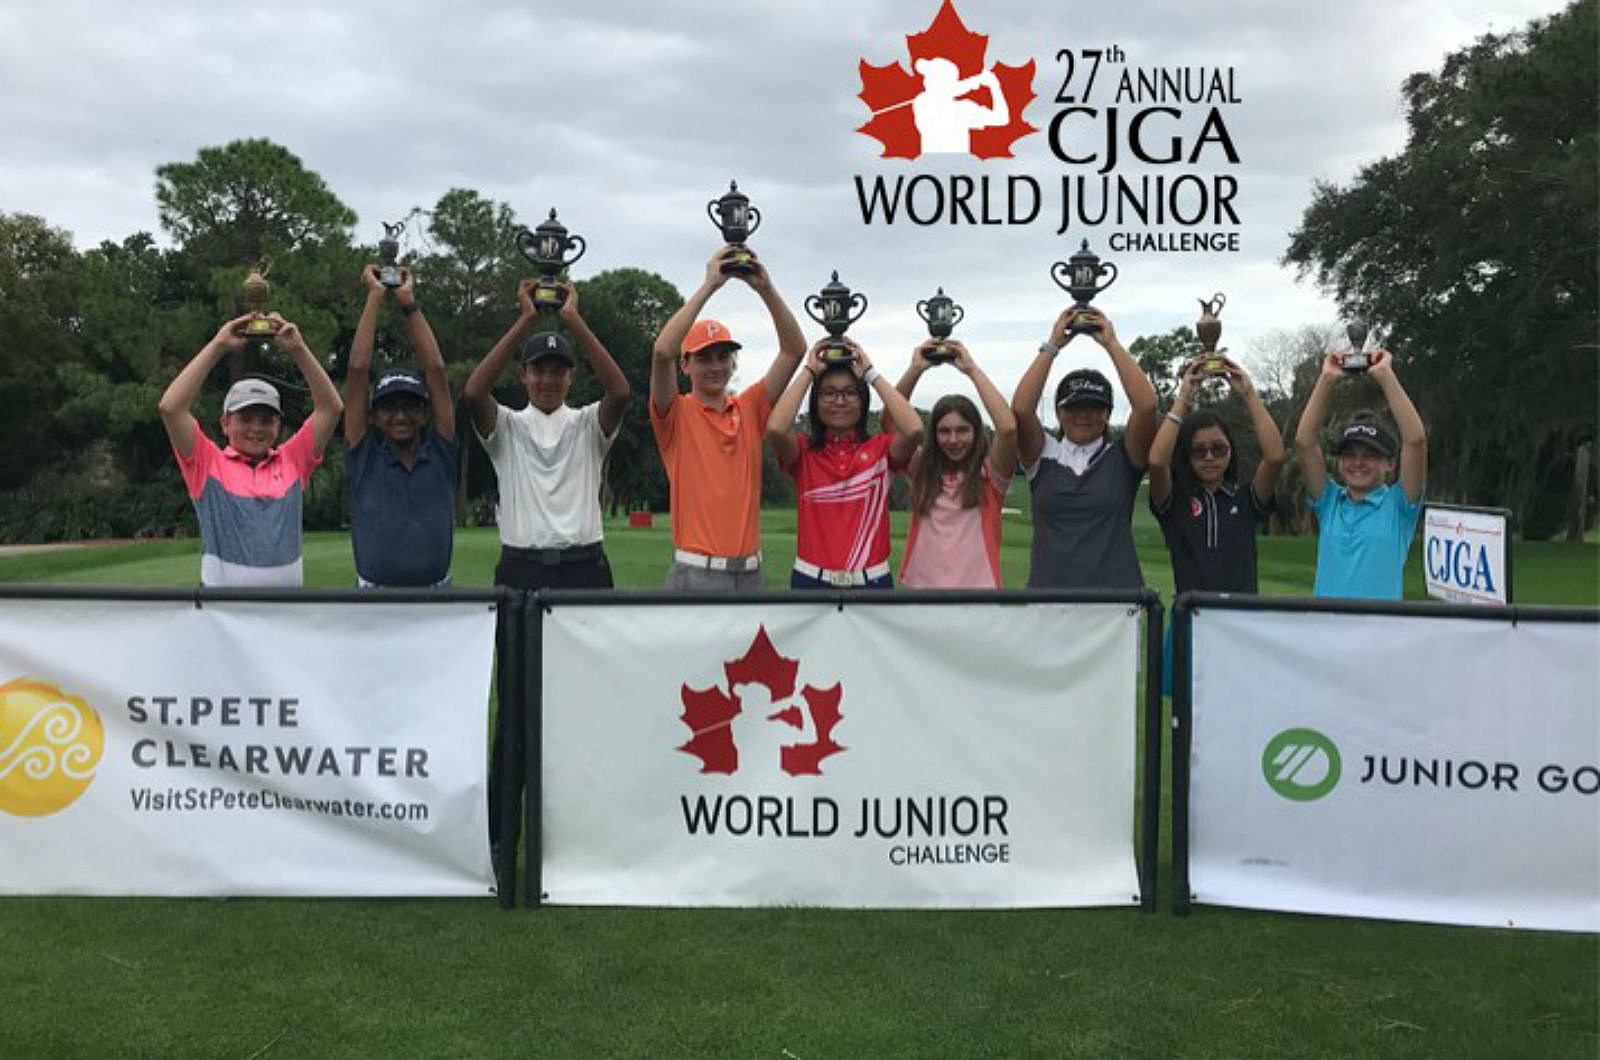 Casper Brothers Play in Canadian Junior Golf Tournament